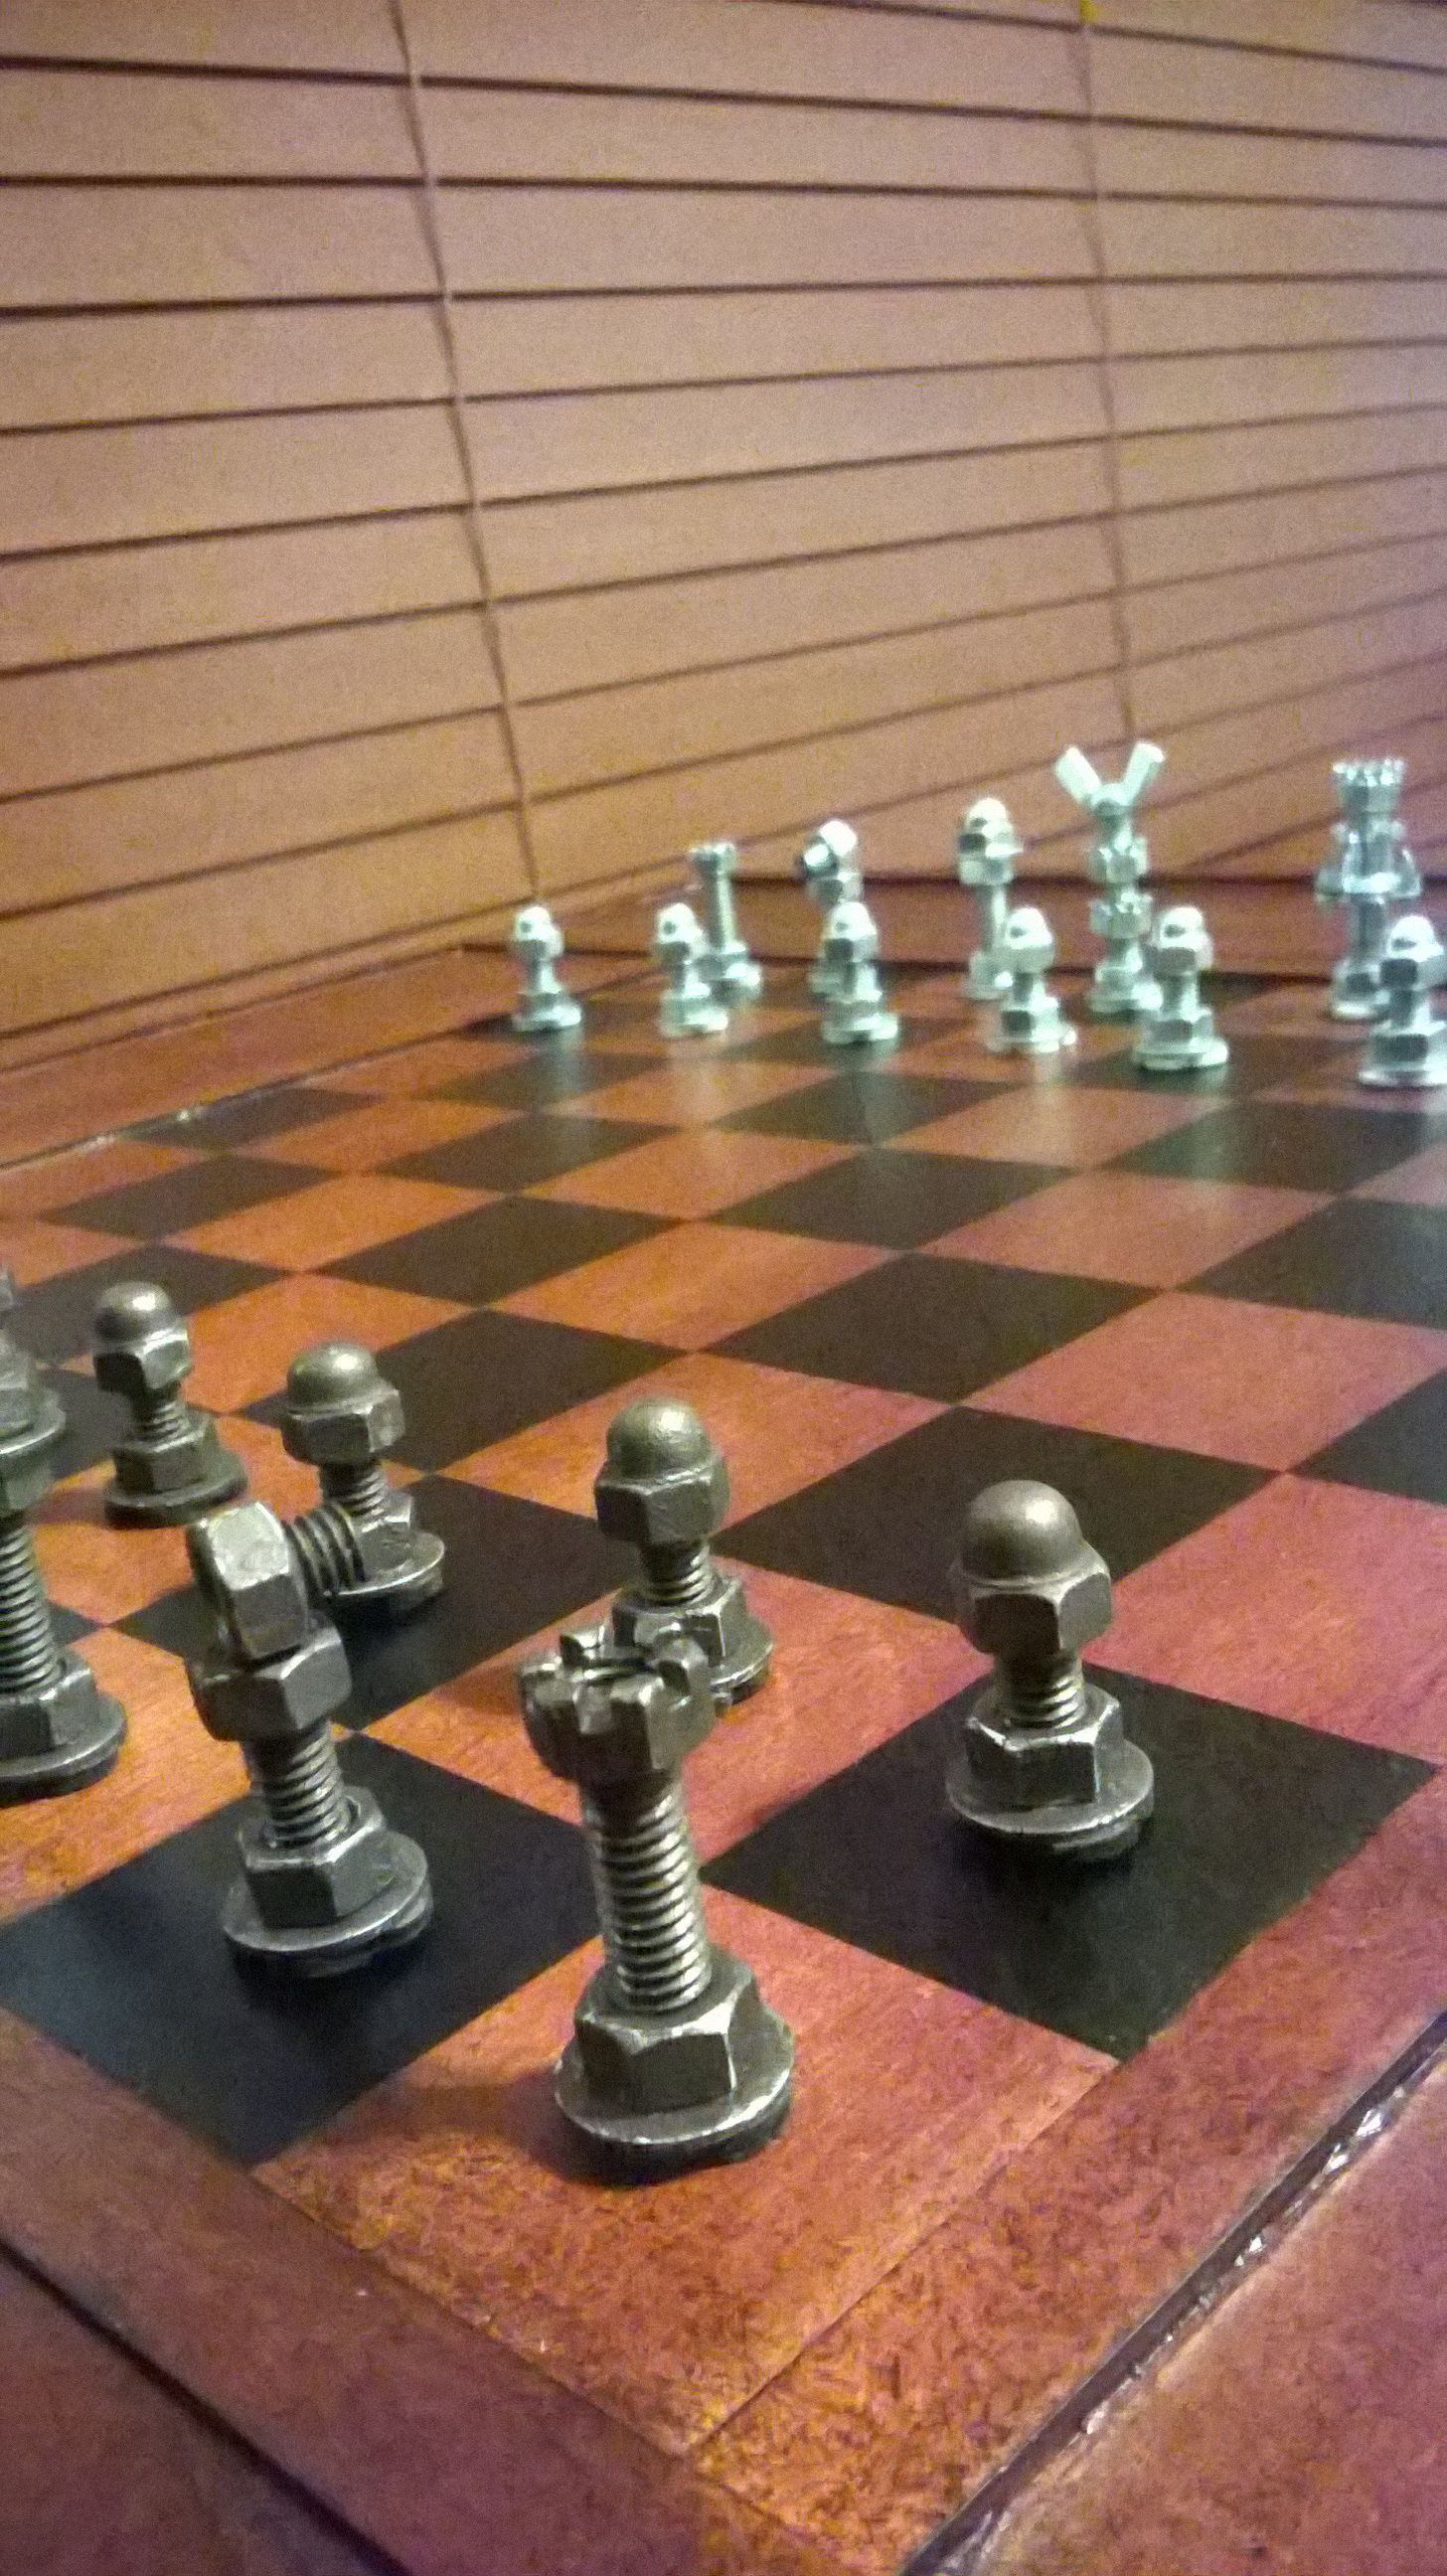 projects ideas metal chess pieces. Project ideas  Steampunk metal chess set Nuts and bolts handmade Super